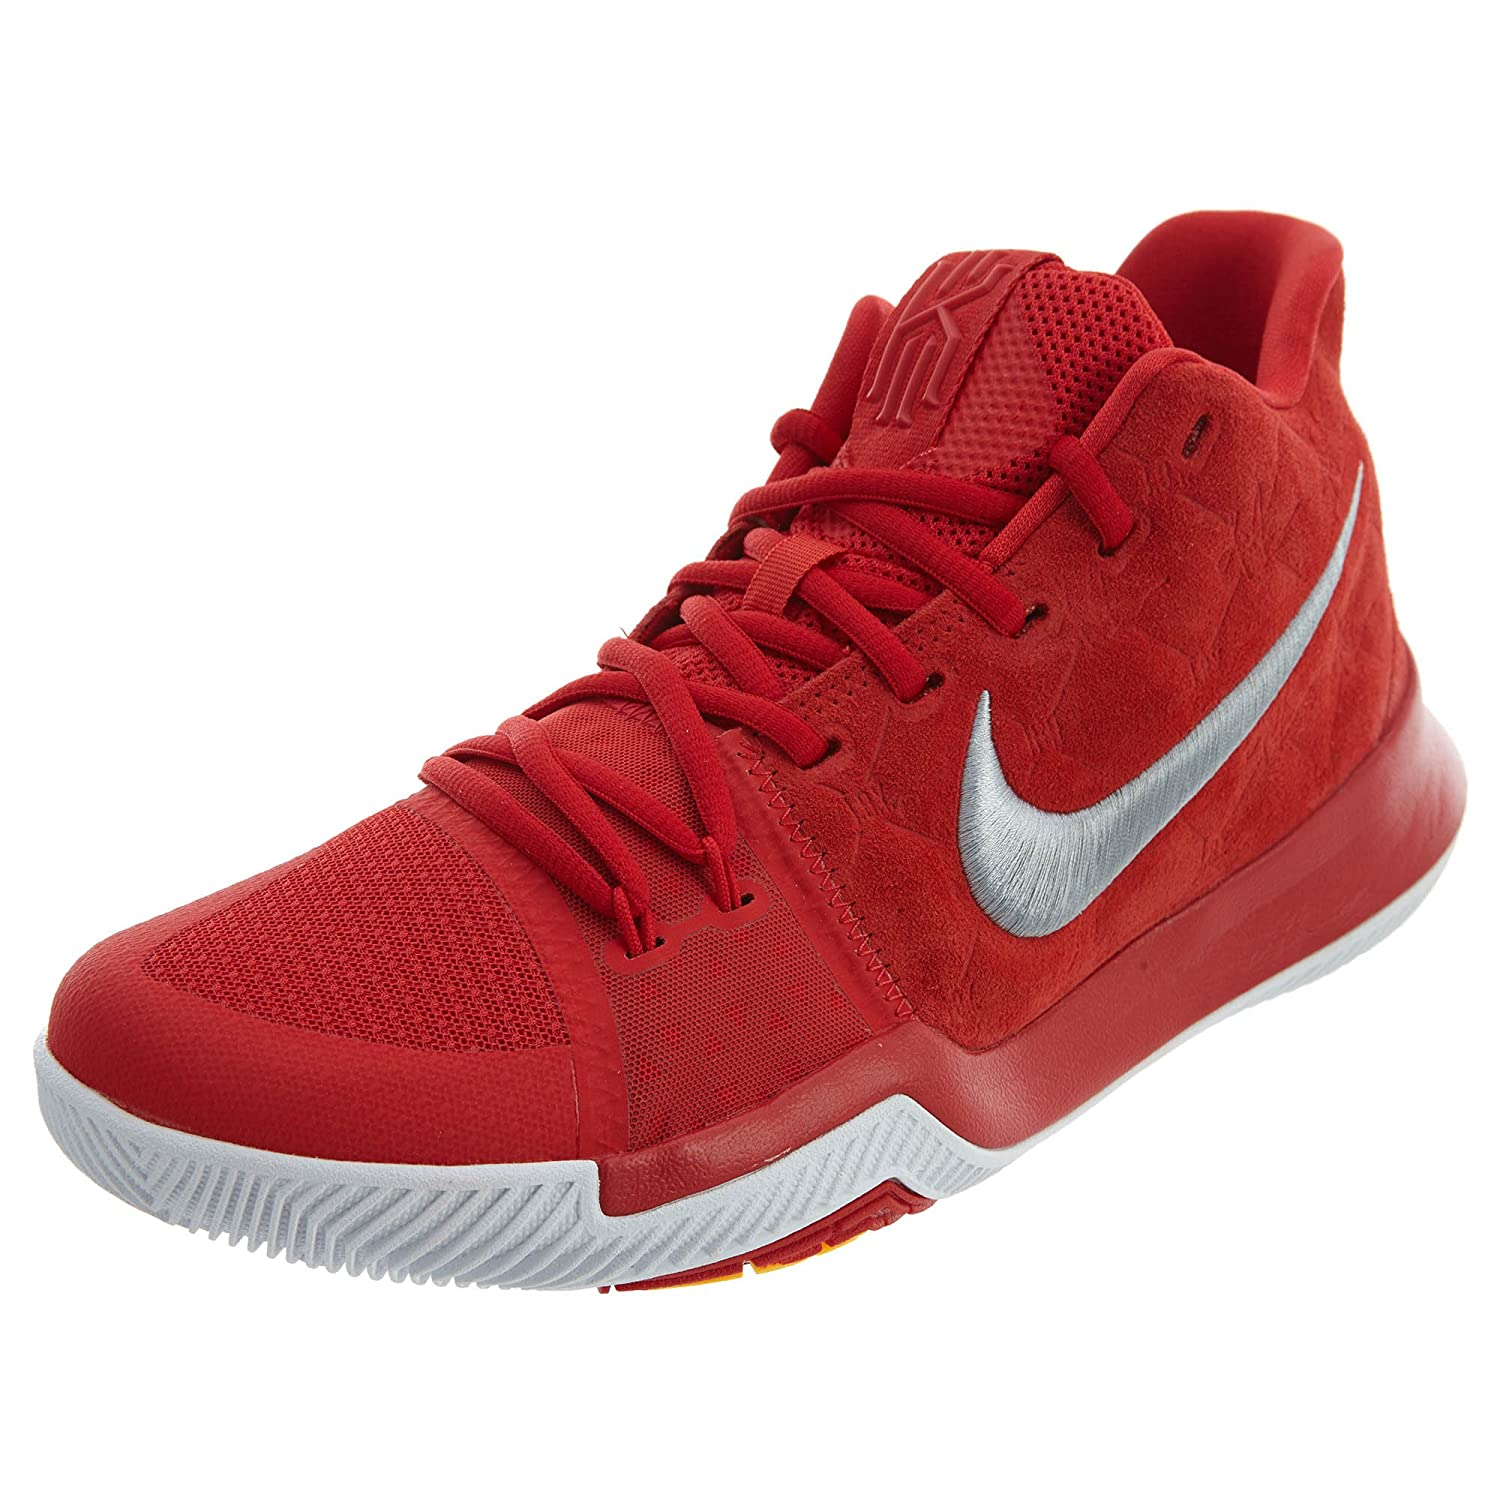 new style 1af3c 7f868 Nike Kyrie 3 Basketball Shoes Kyrie Irving Mens